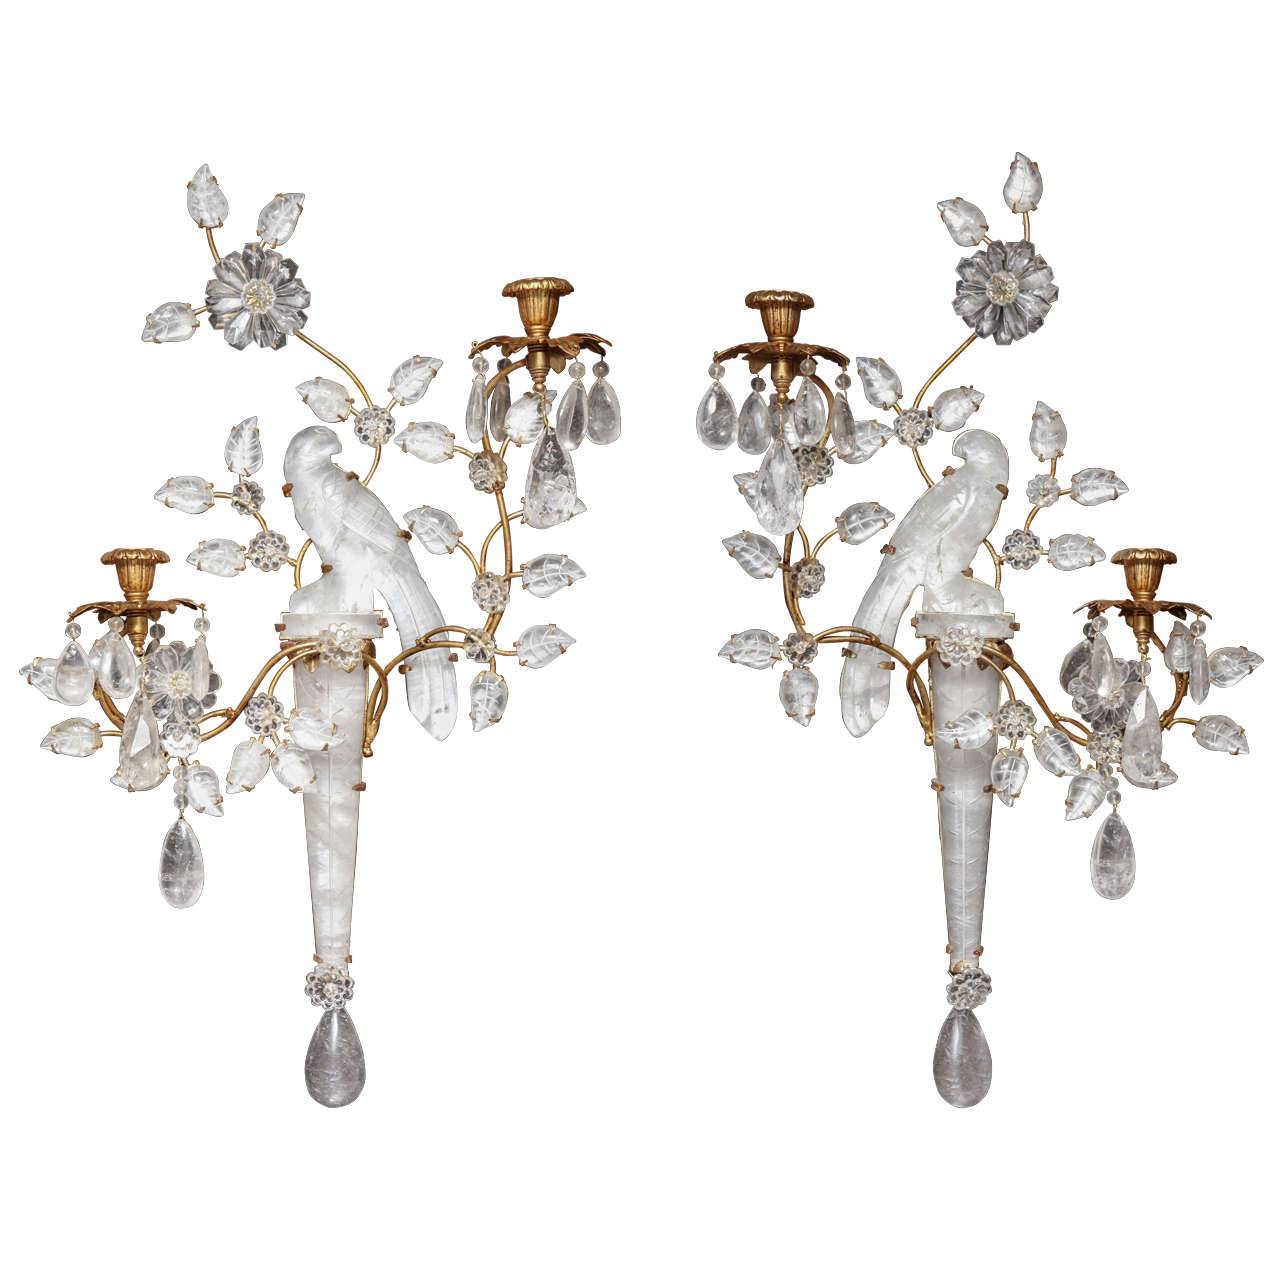 A Pair of Antique French Louis XVI gilt bronze and cut rock crystal sconces by Bagues at 1stdibs